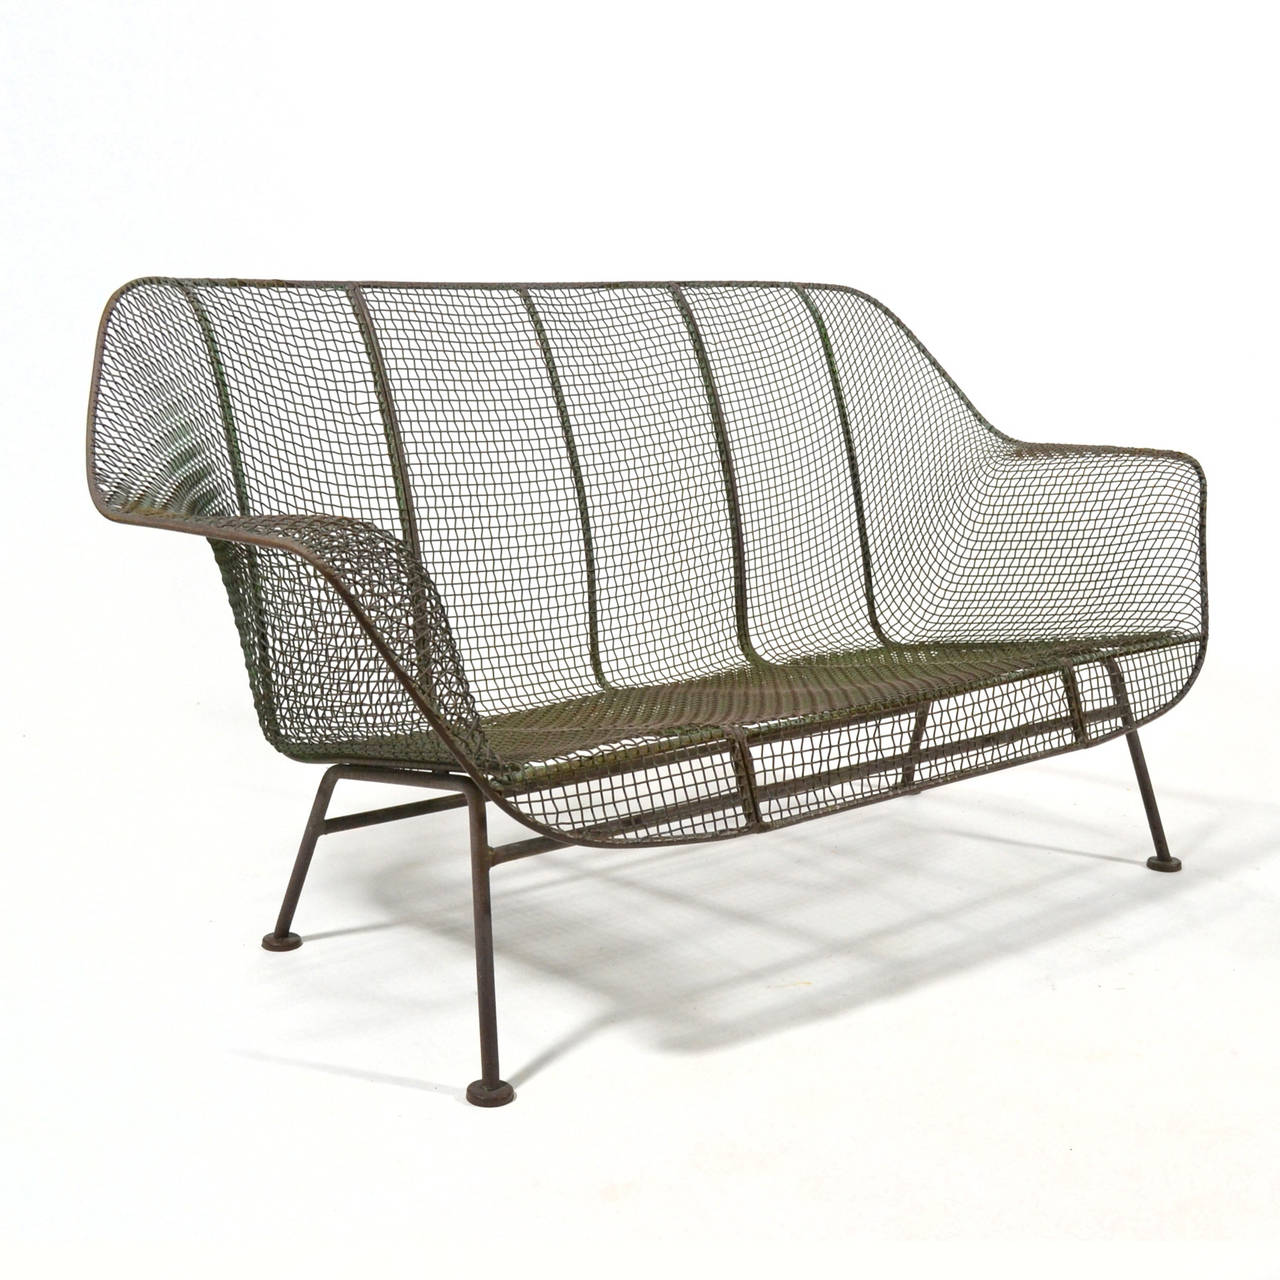 The Sculptura line by Russell Woodard is an enduring design for comfortable and long-lasting modern outdoor furniture. The wrought iron frame covered in sculpted wire mesh references the organic designs of Eames and Saarinen and parallels their